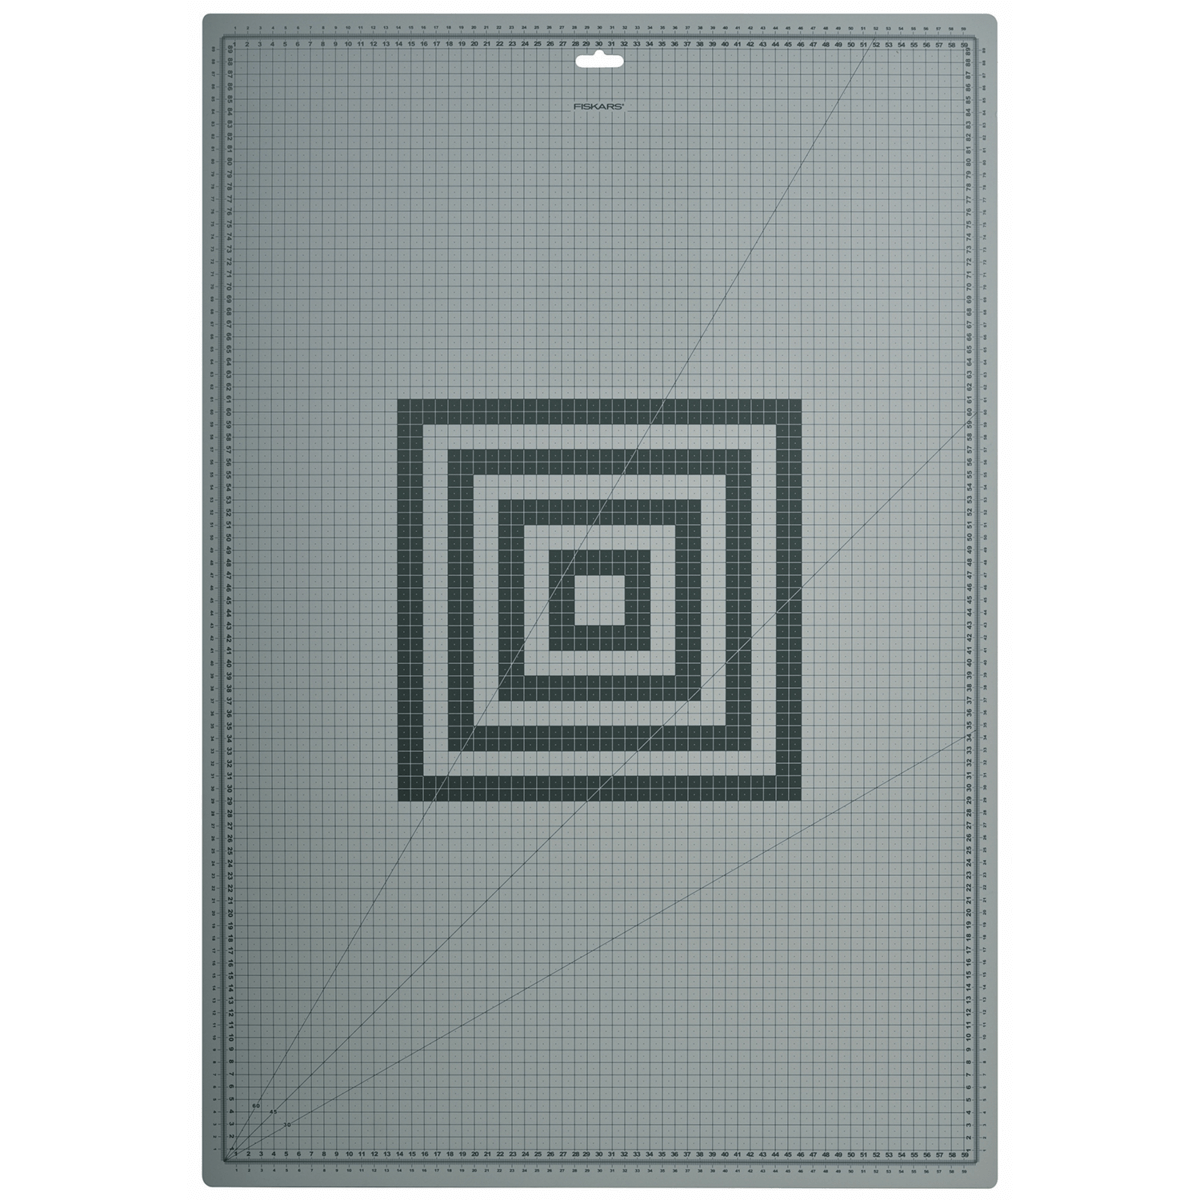 Fiskars Double Sided Extra Large Cutting Mat 24 x 36 Inches / 60 x 91cm A1 Size